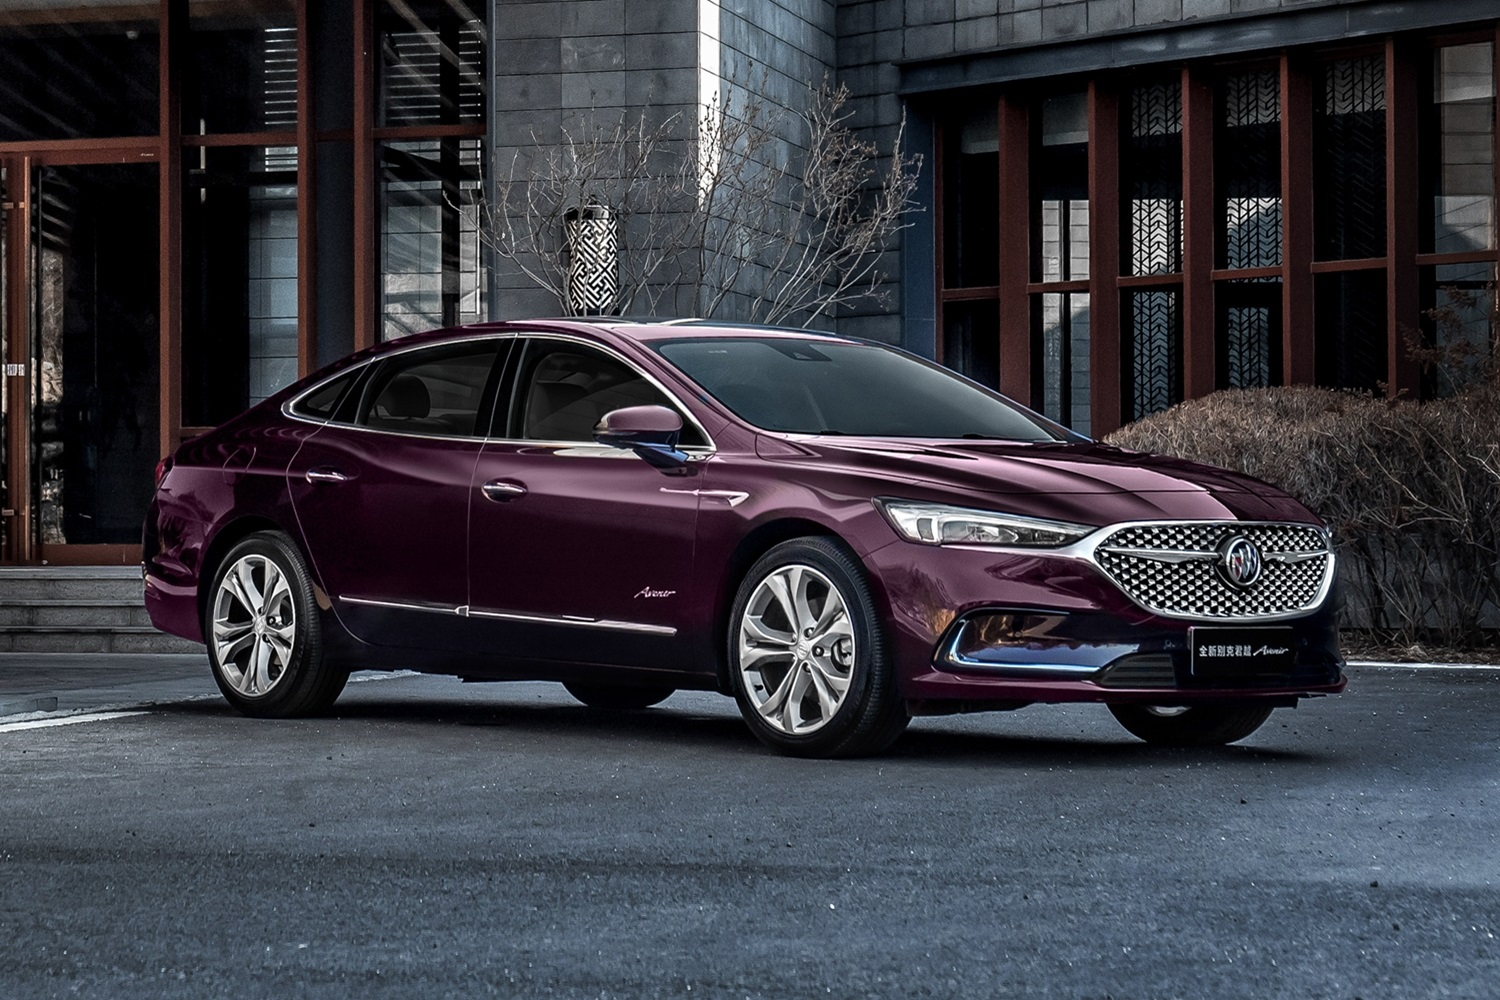 2021 Buick Lacrosse Gets More Refined Than Ever | Gm Authority New 2021 Buick Lucerne Rims, Tire Size, Headlights